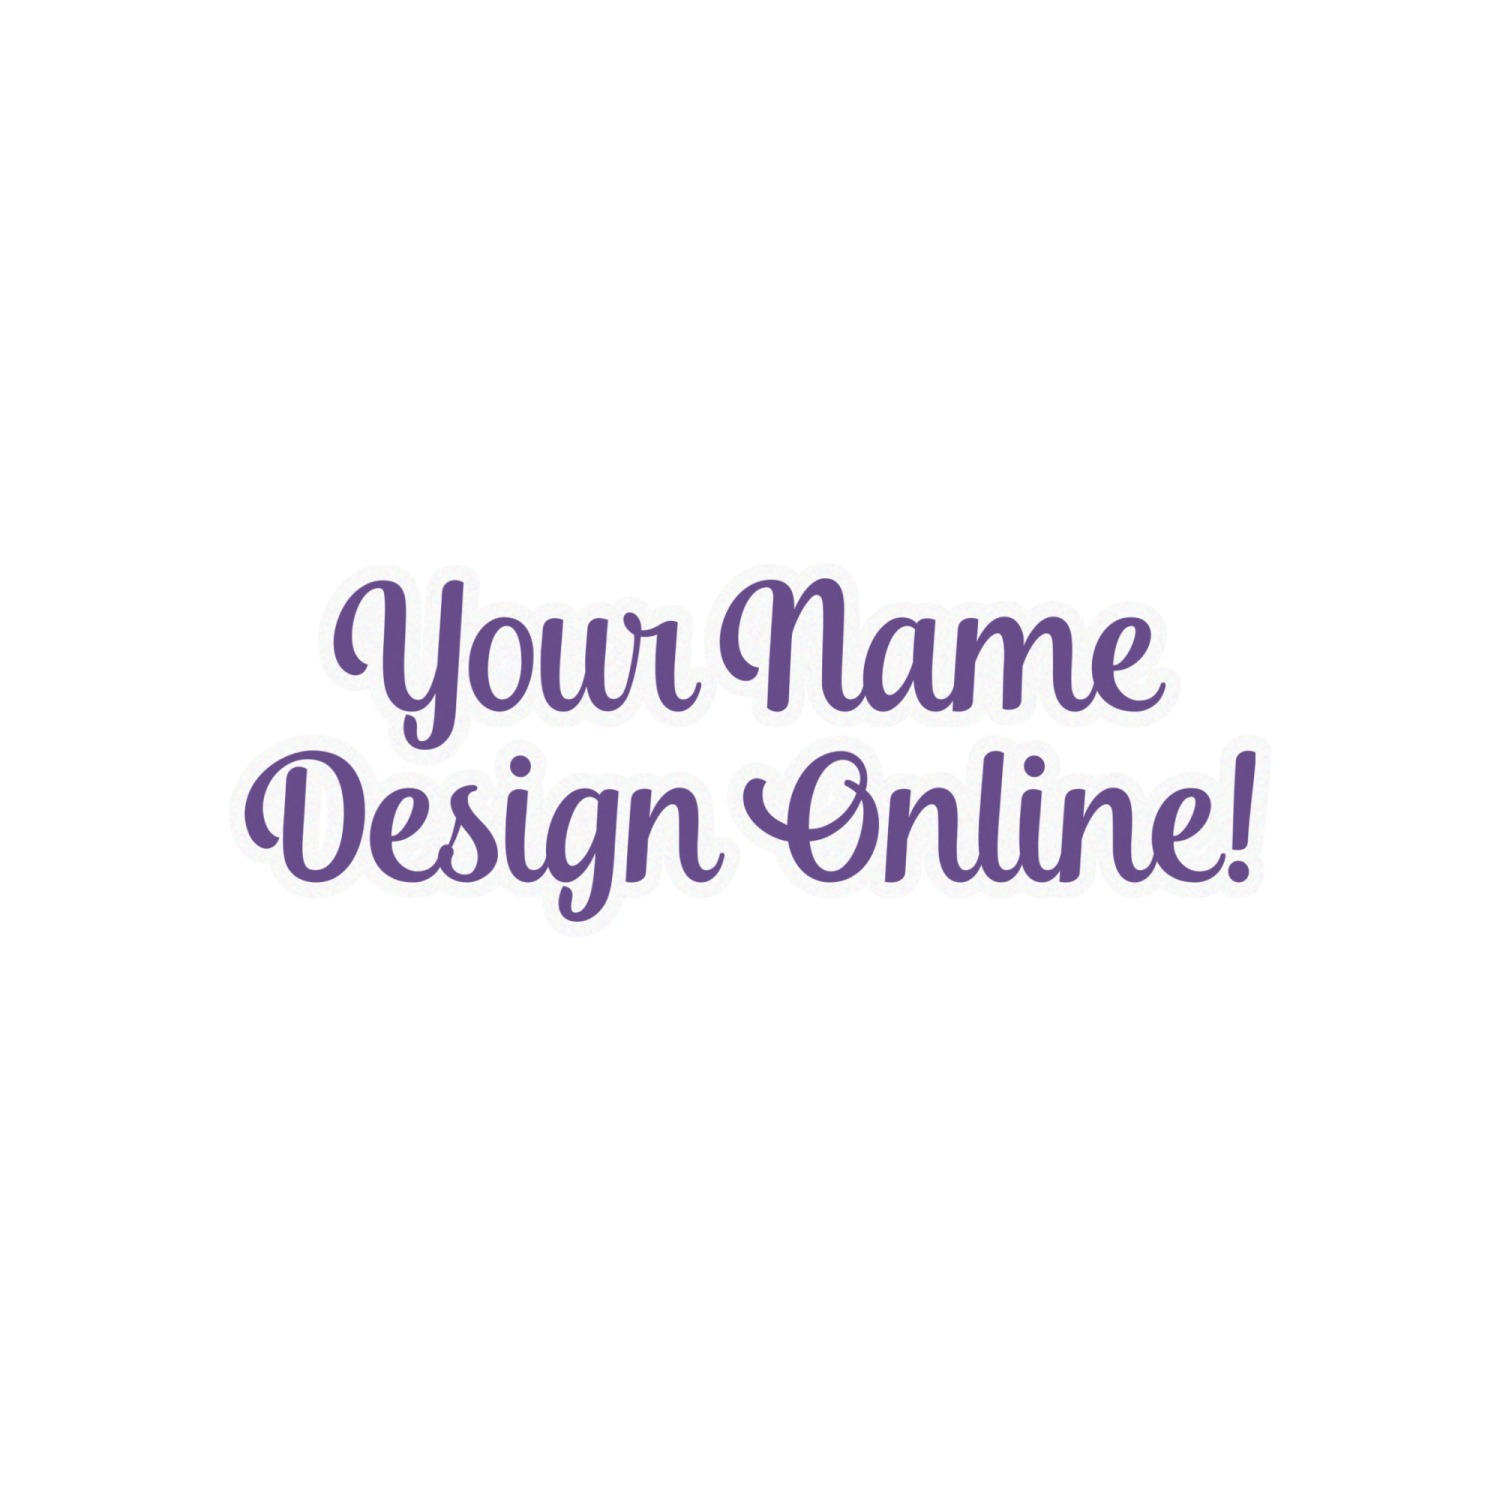 Bedroom Colors For Small Rooms Design Your Own Name Decal Custom Sized Personalized